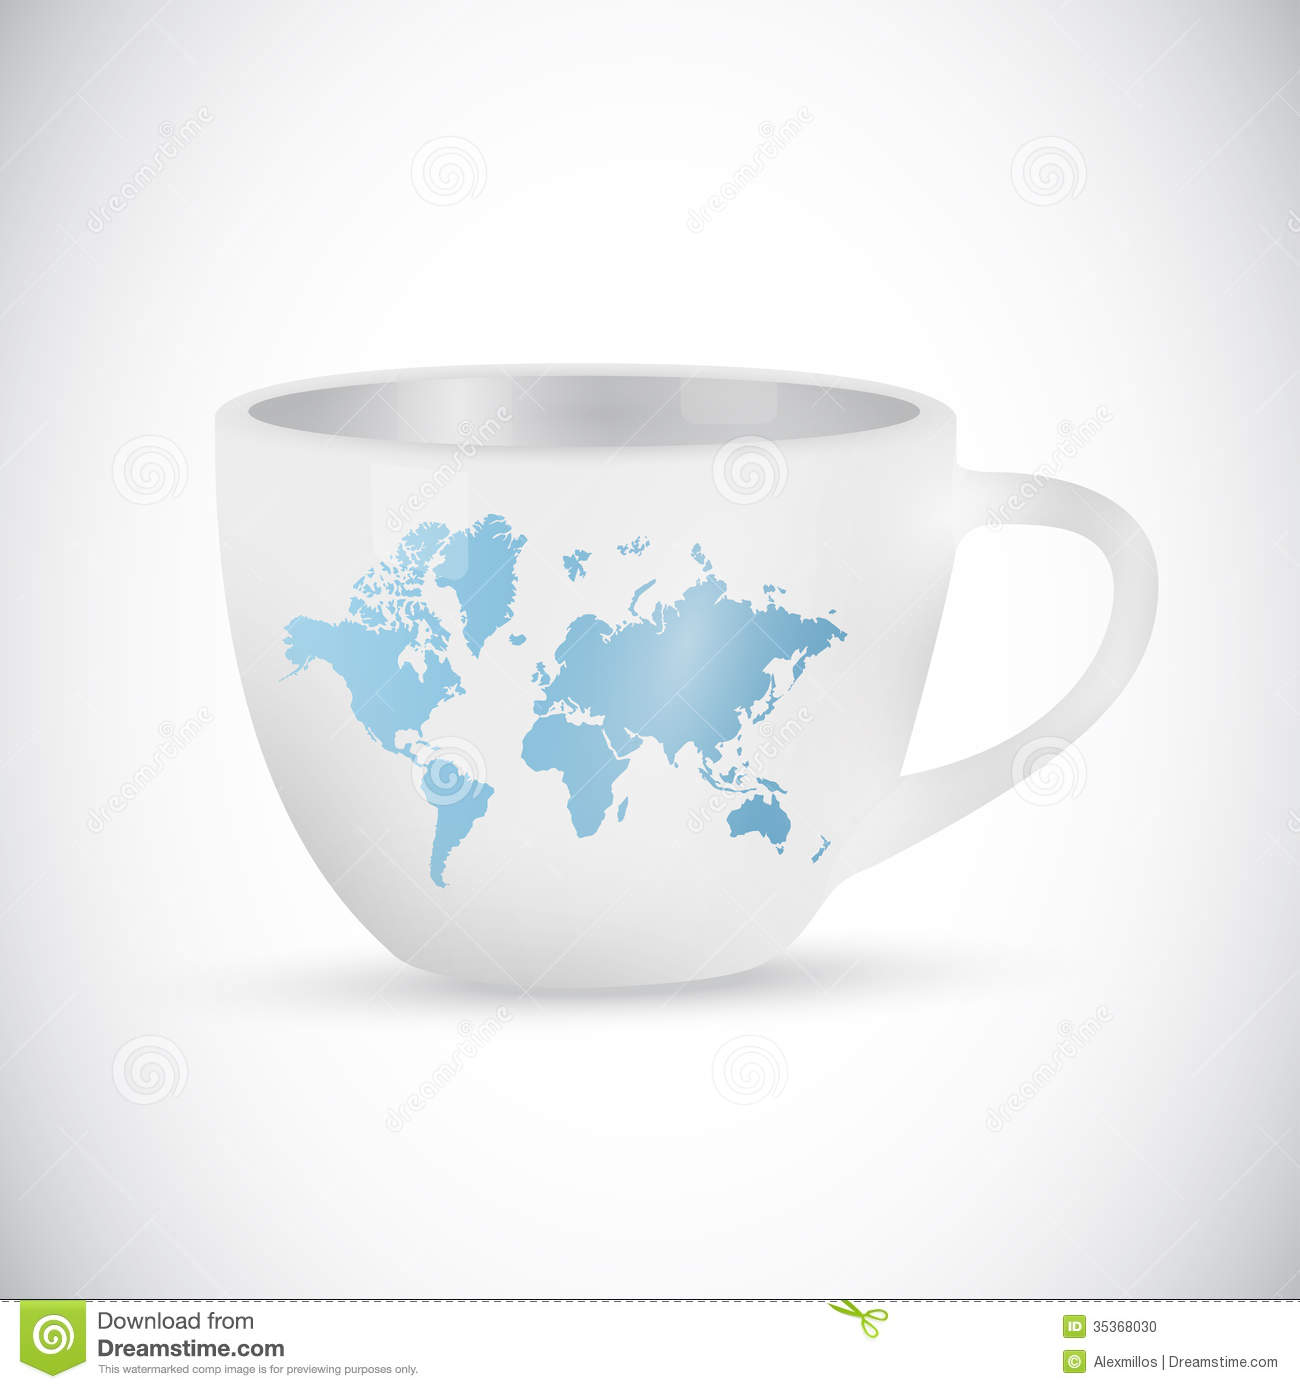 Must say coffee mug global domination sexy view